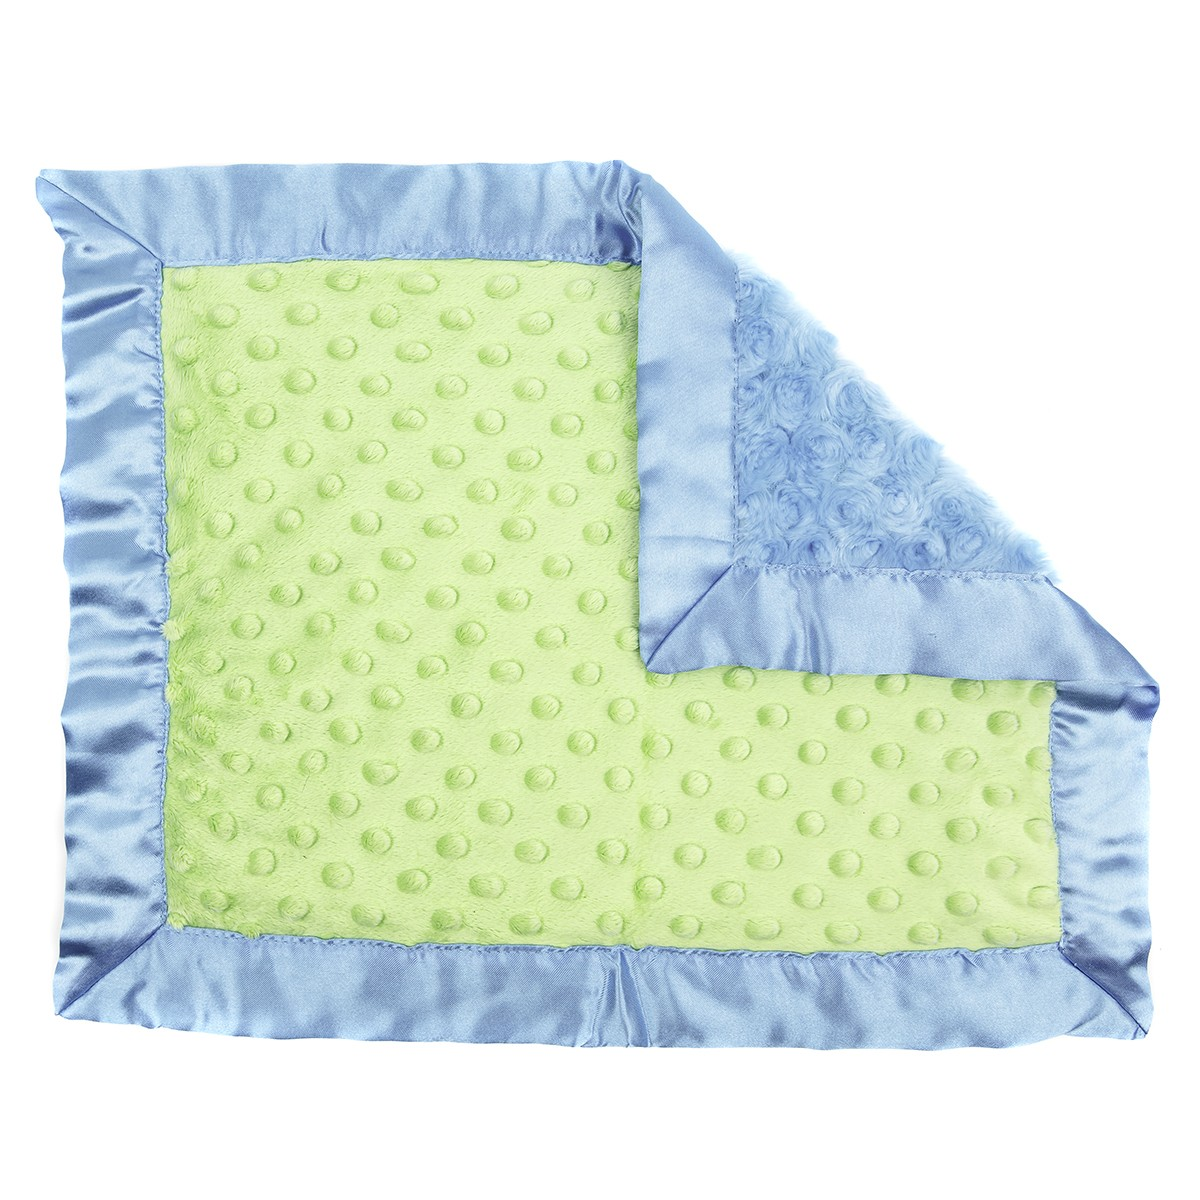 Plush And Goosebumps Baby Blankie Turquoise Green